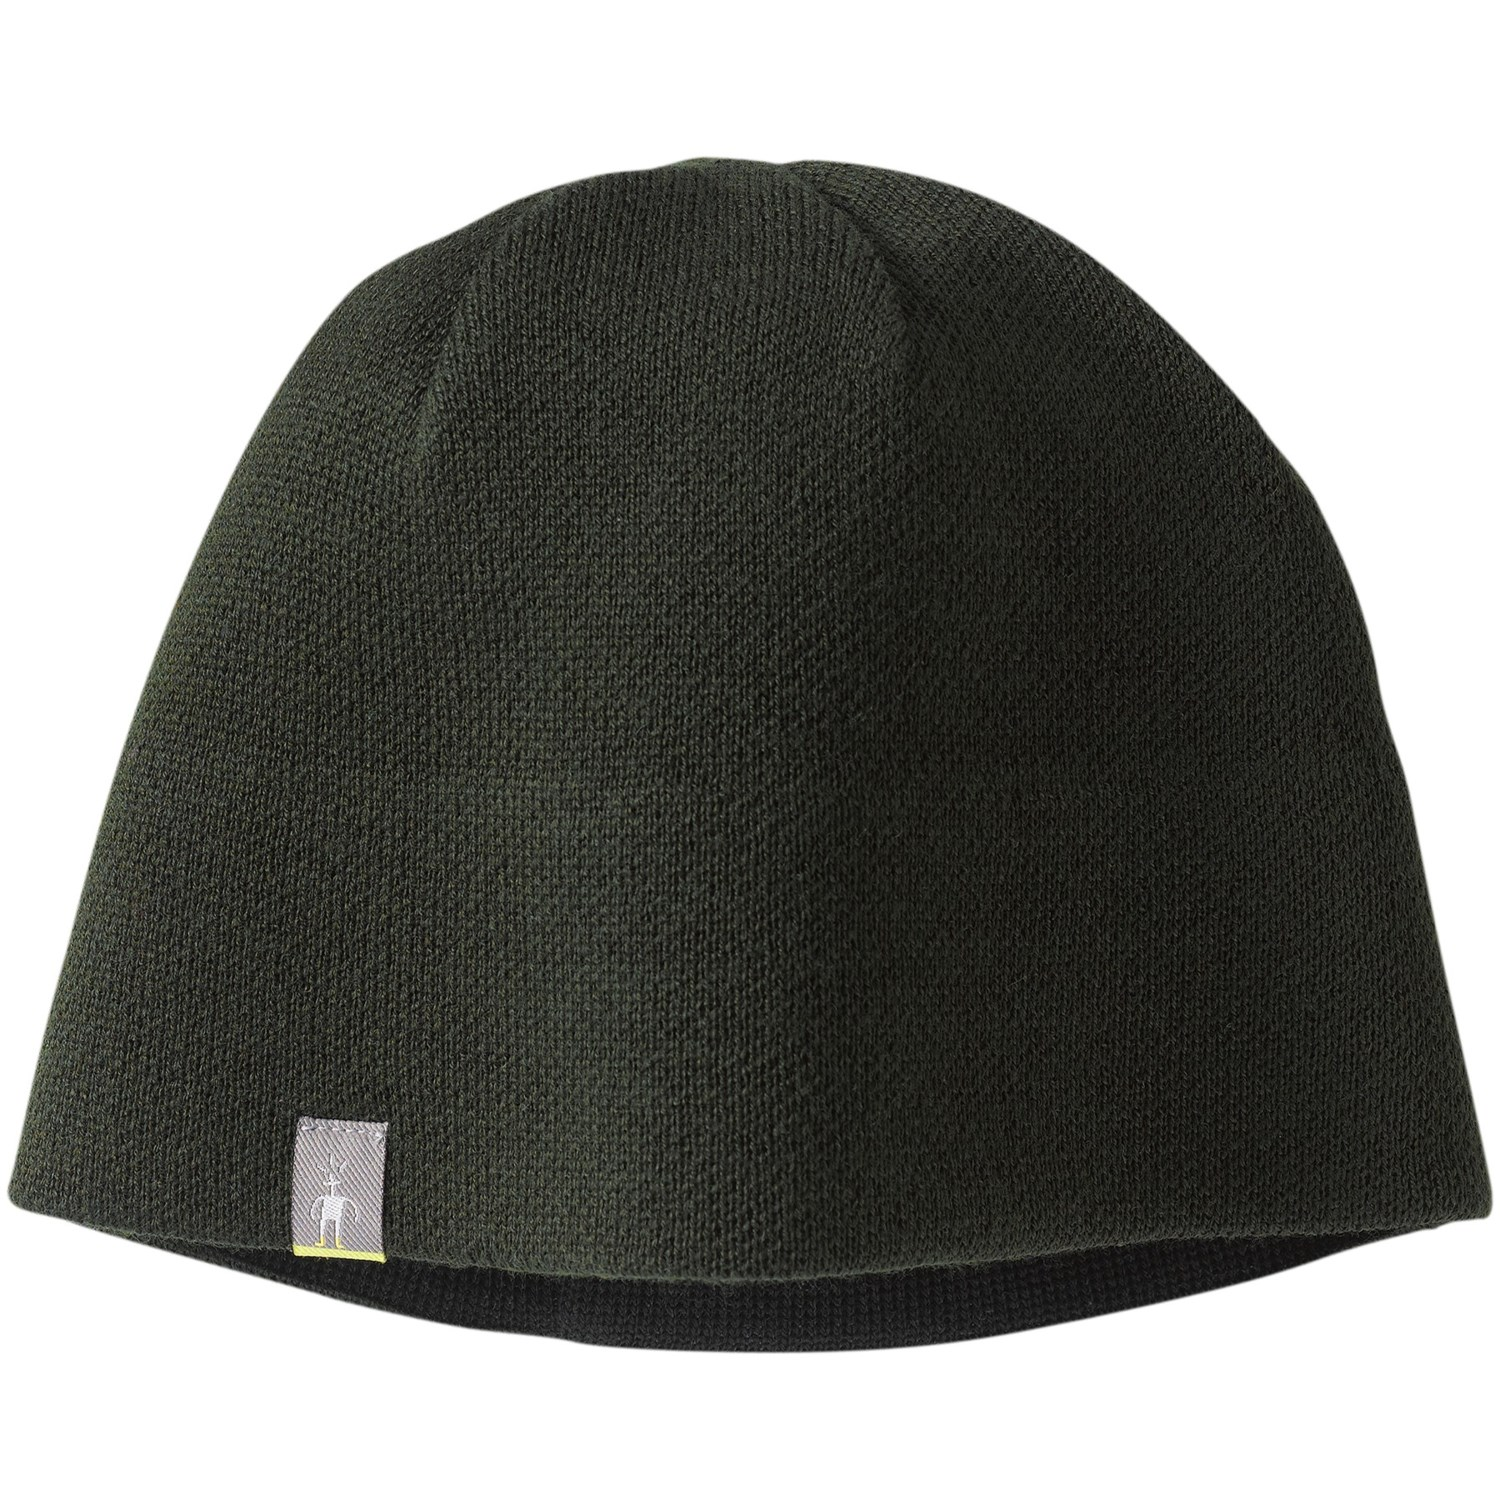 Ridge Cuff Wool Beanie If you want style, comfort, and warmth for your head, this is the hat for you! The Ridge Cuff provides all the warmth necessary on a cold winter's day while staying light and comfortable.